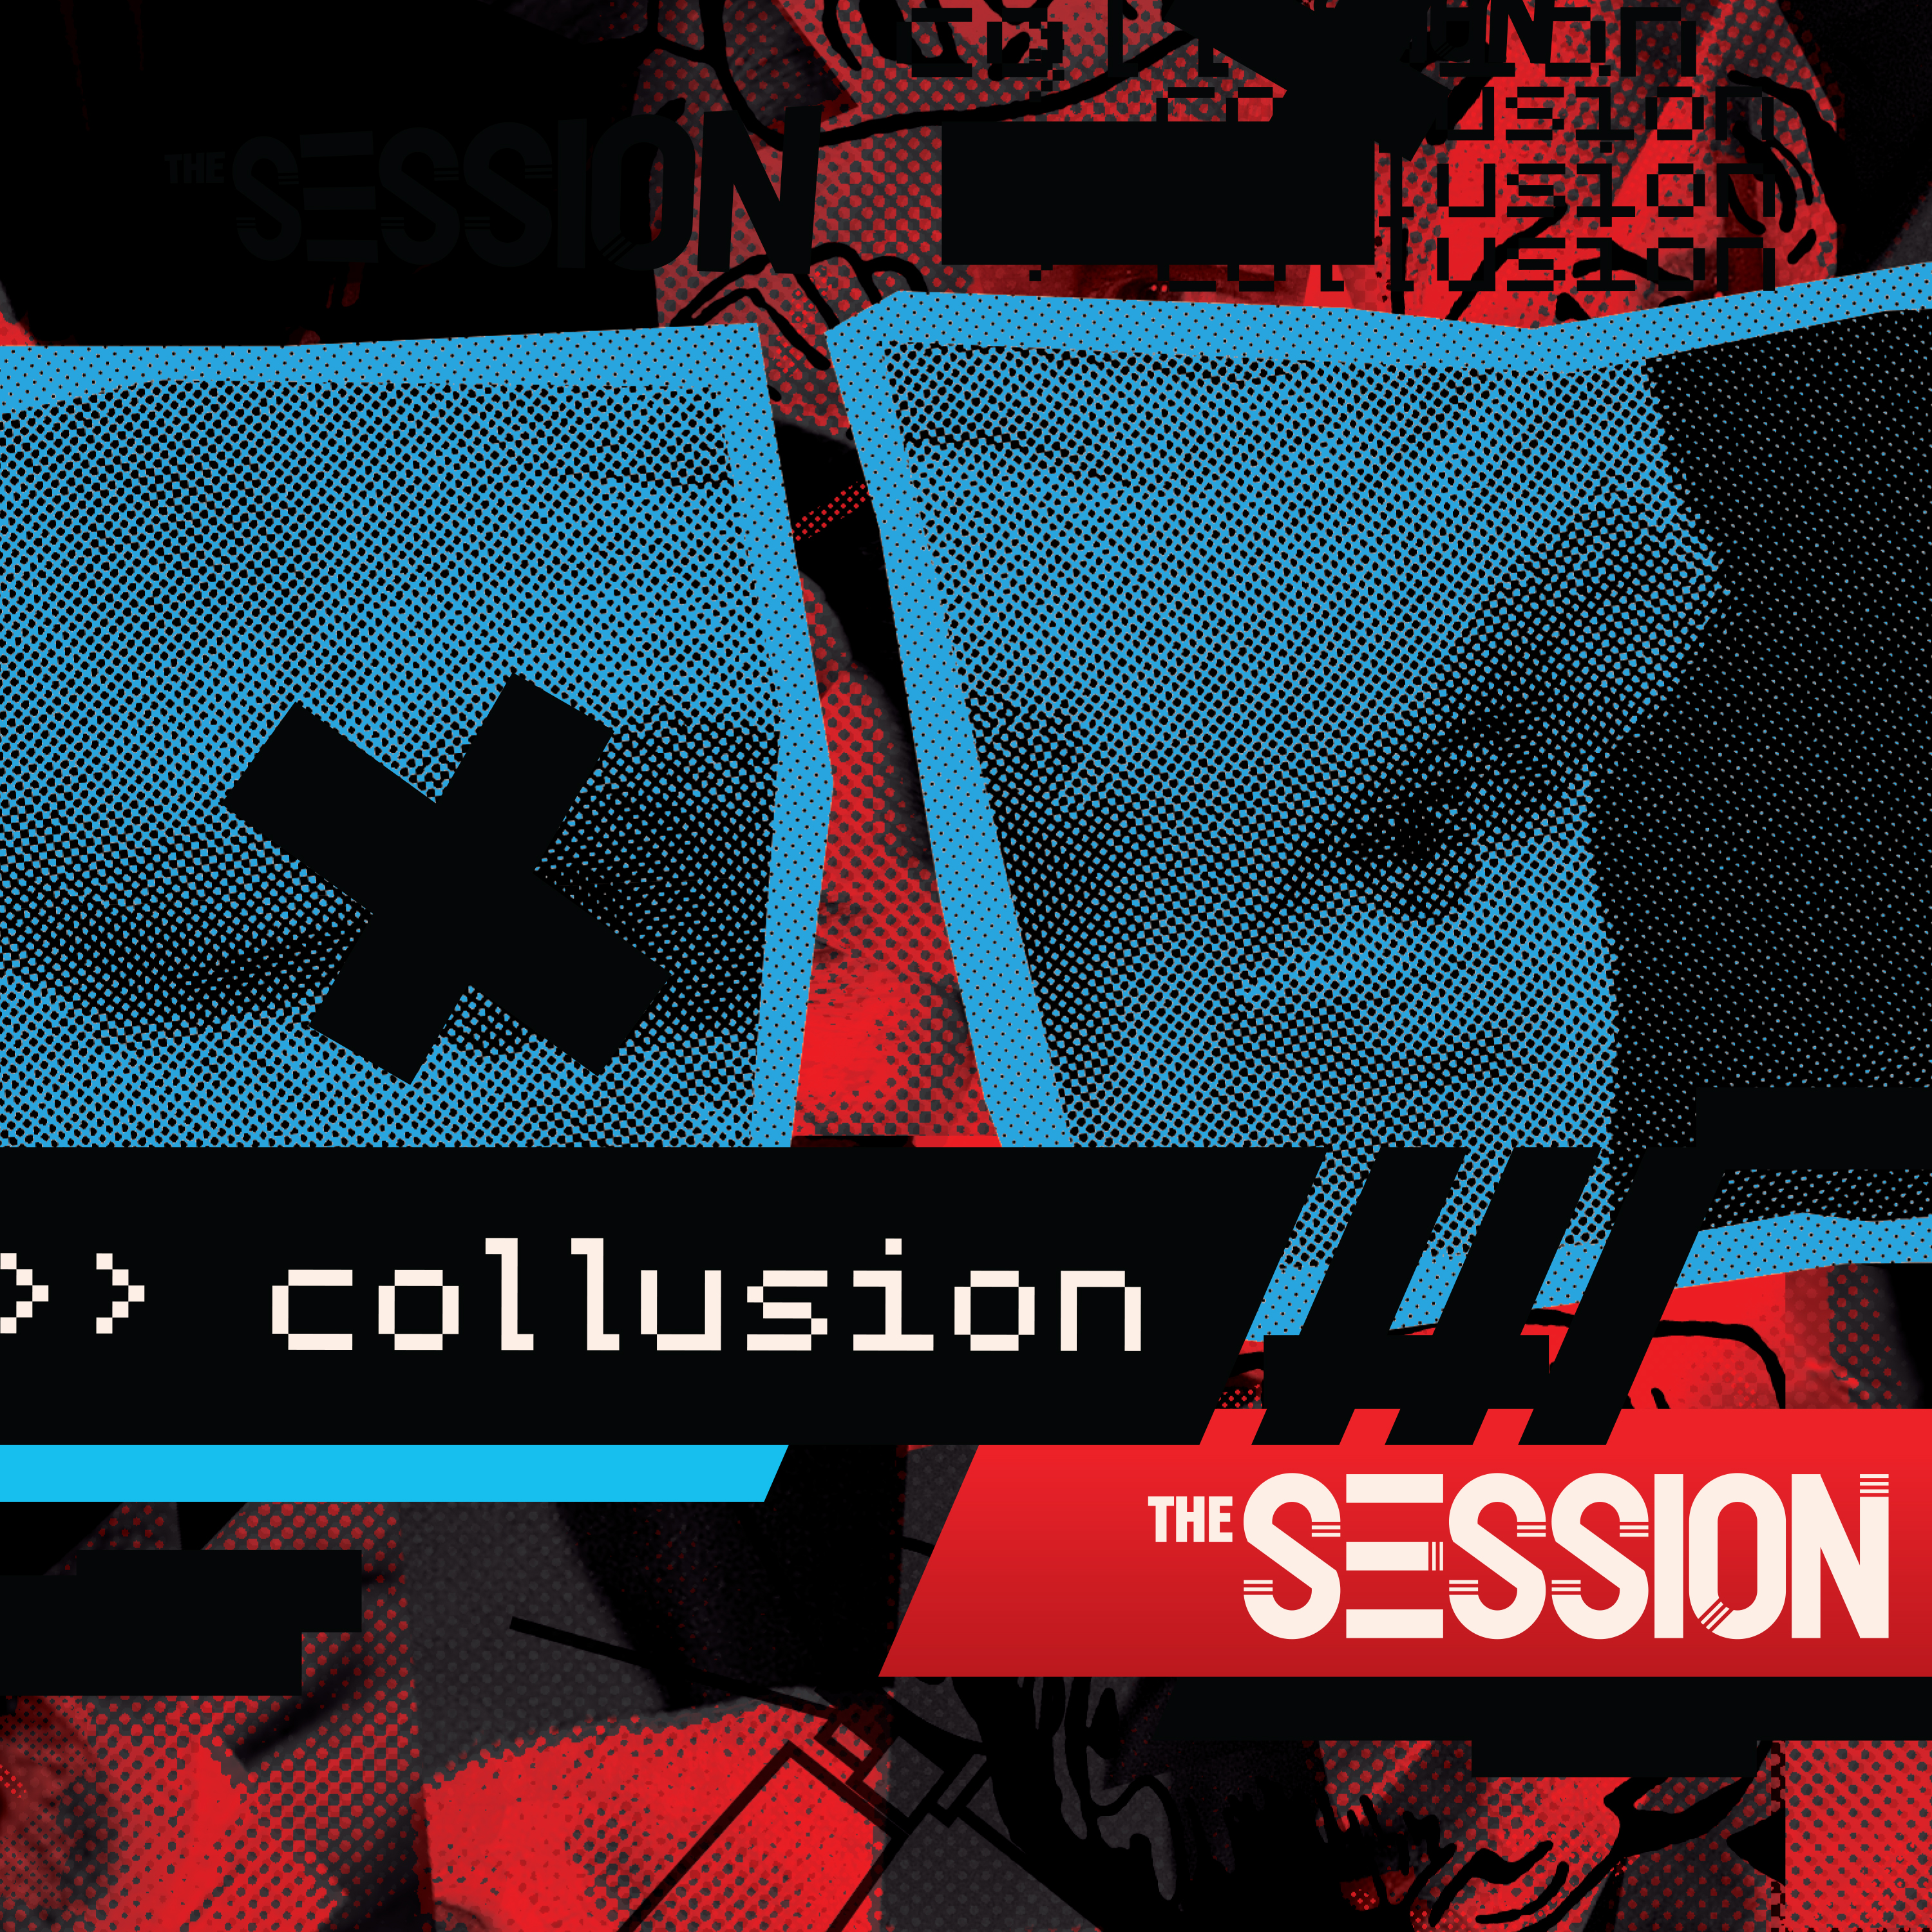 "REVIEW: The Session's ""Collusion"" Reviewed by Jazz Weekly"